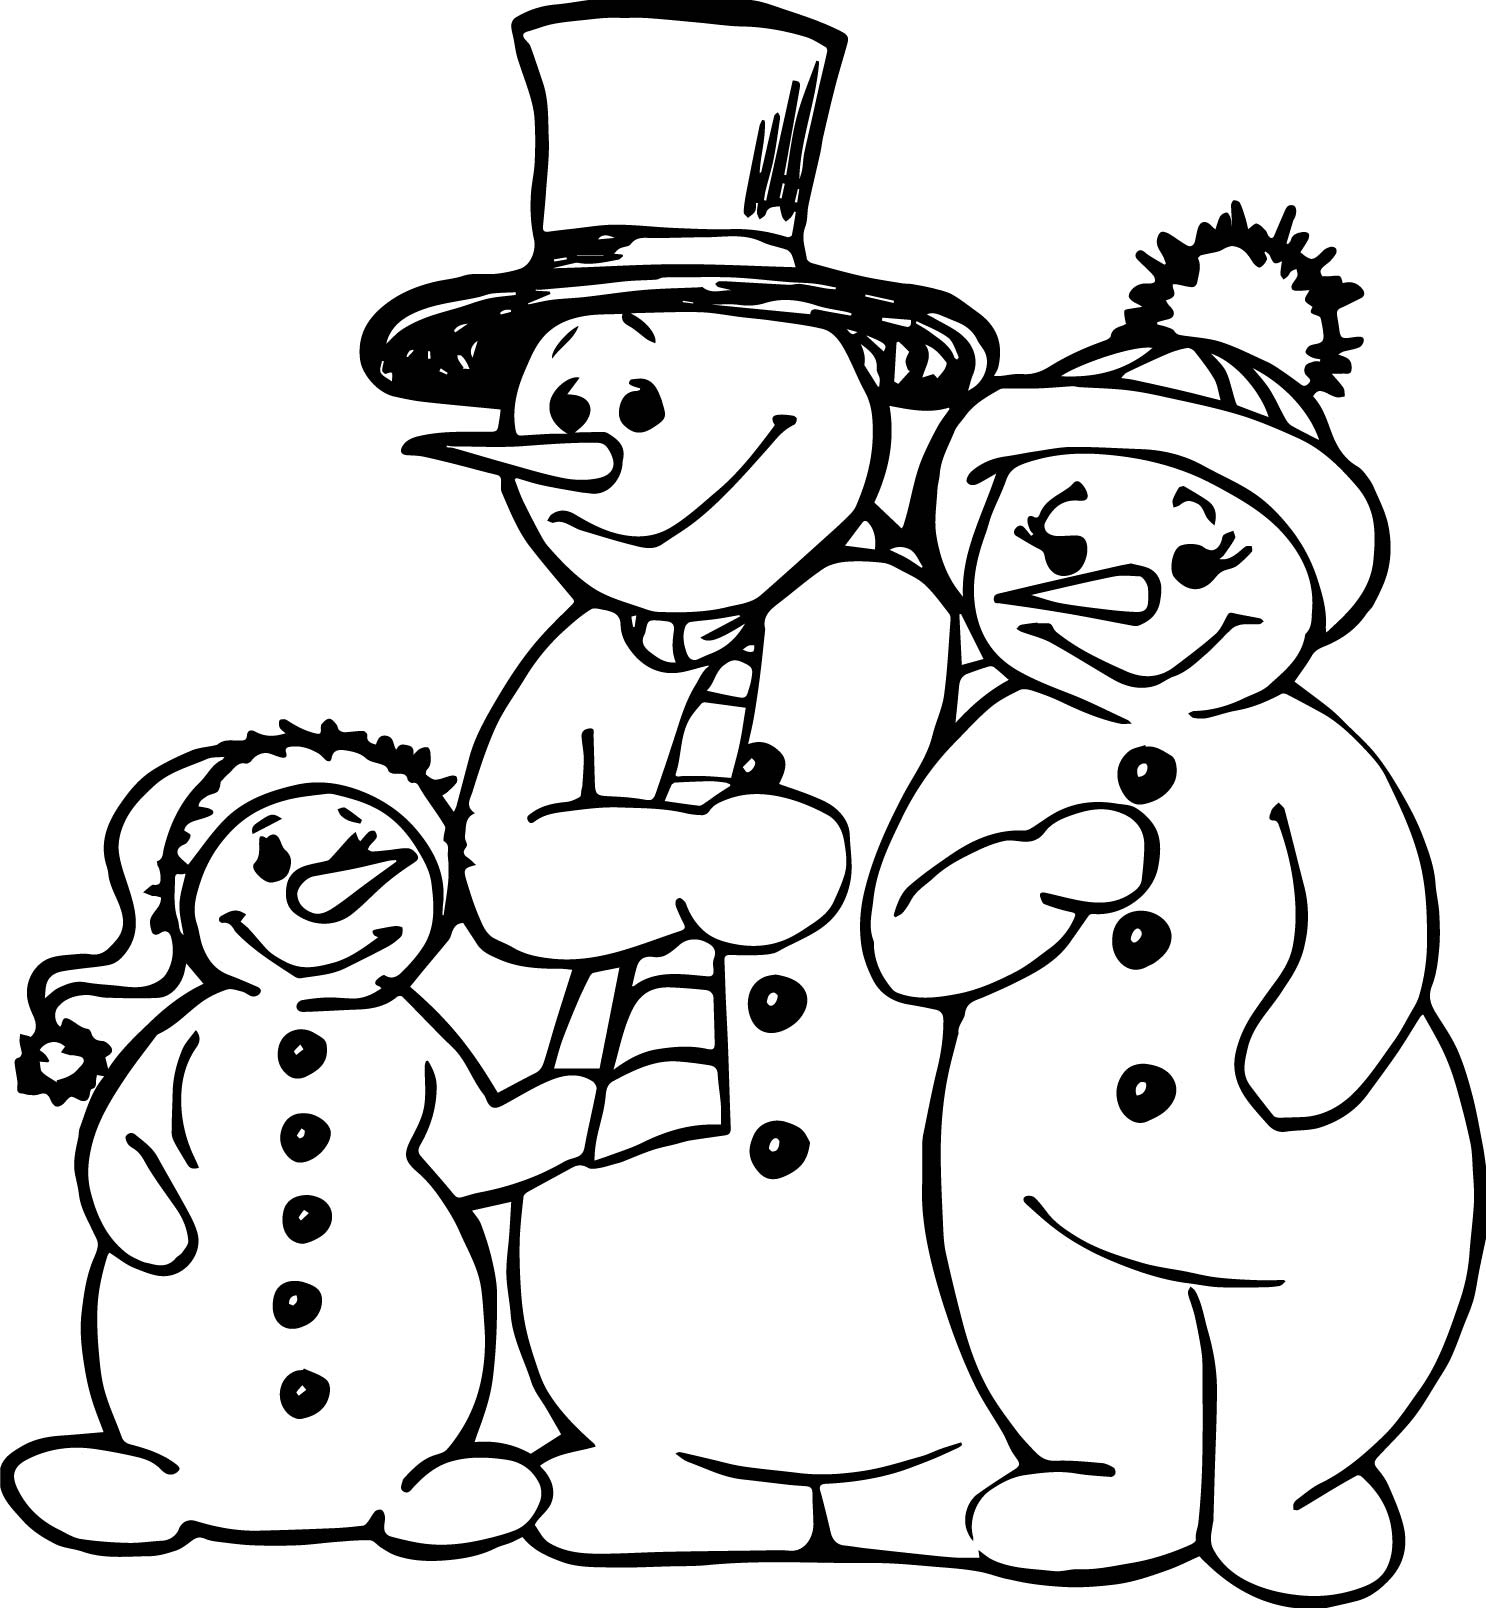 Family people snowman family coloring page for Free coloring pages snowman